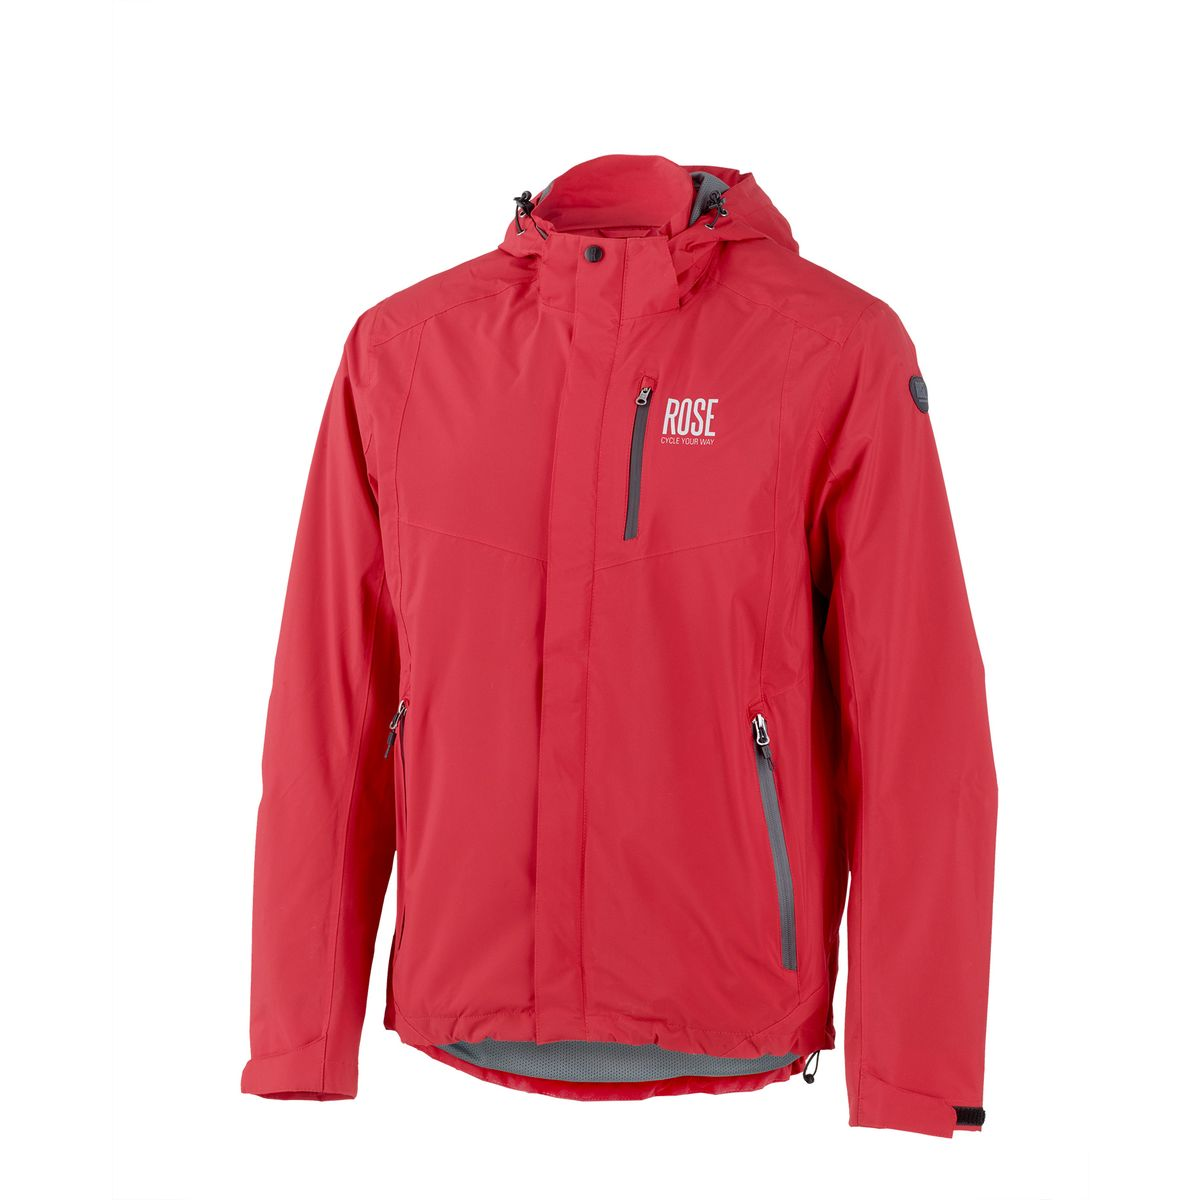 ROSE RR 07 waterproof jacket | Jakker